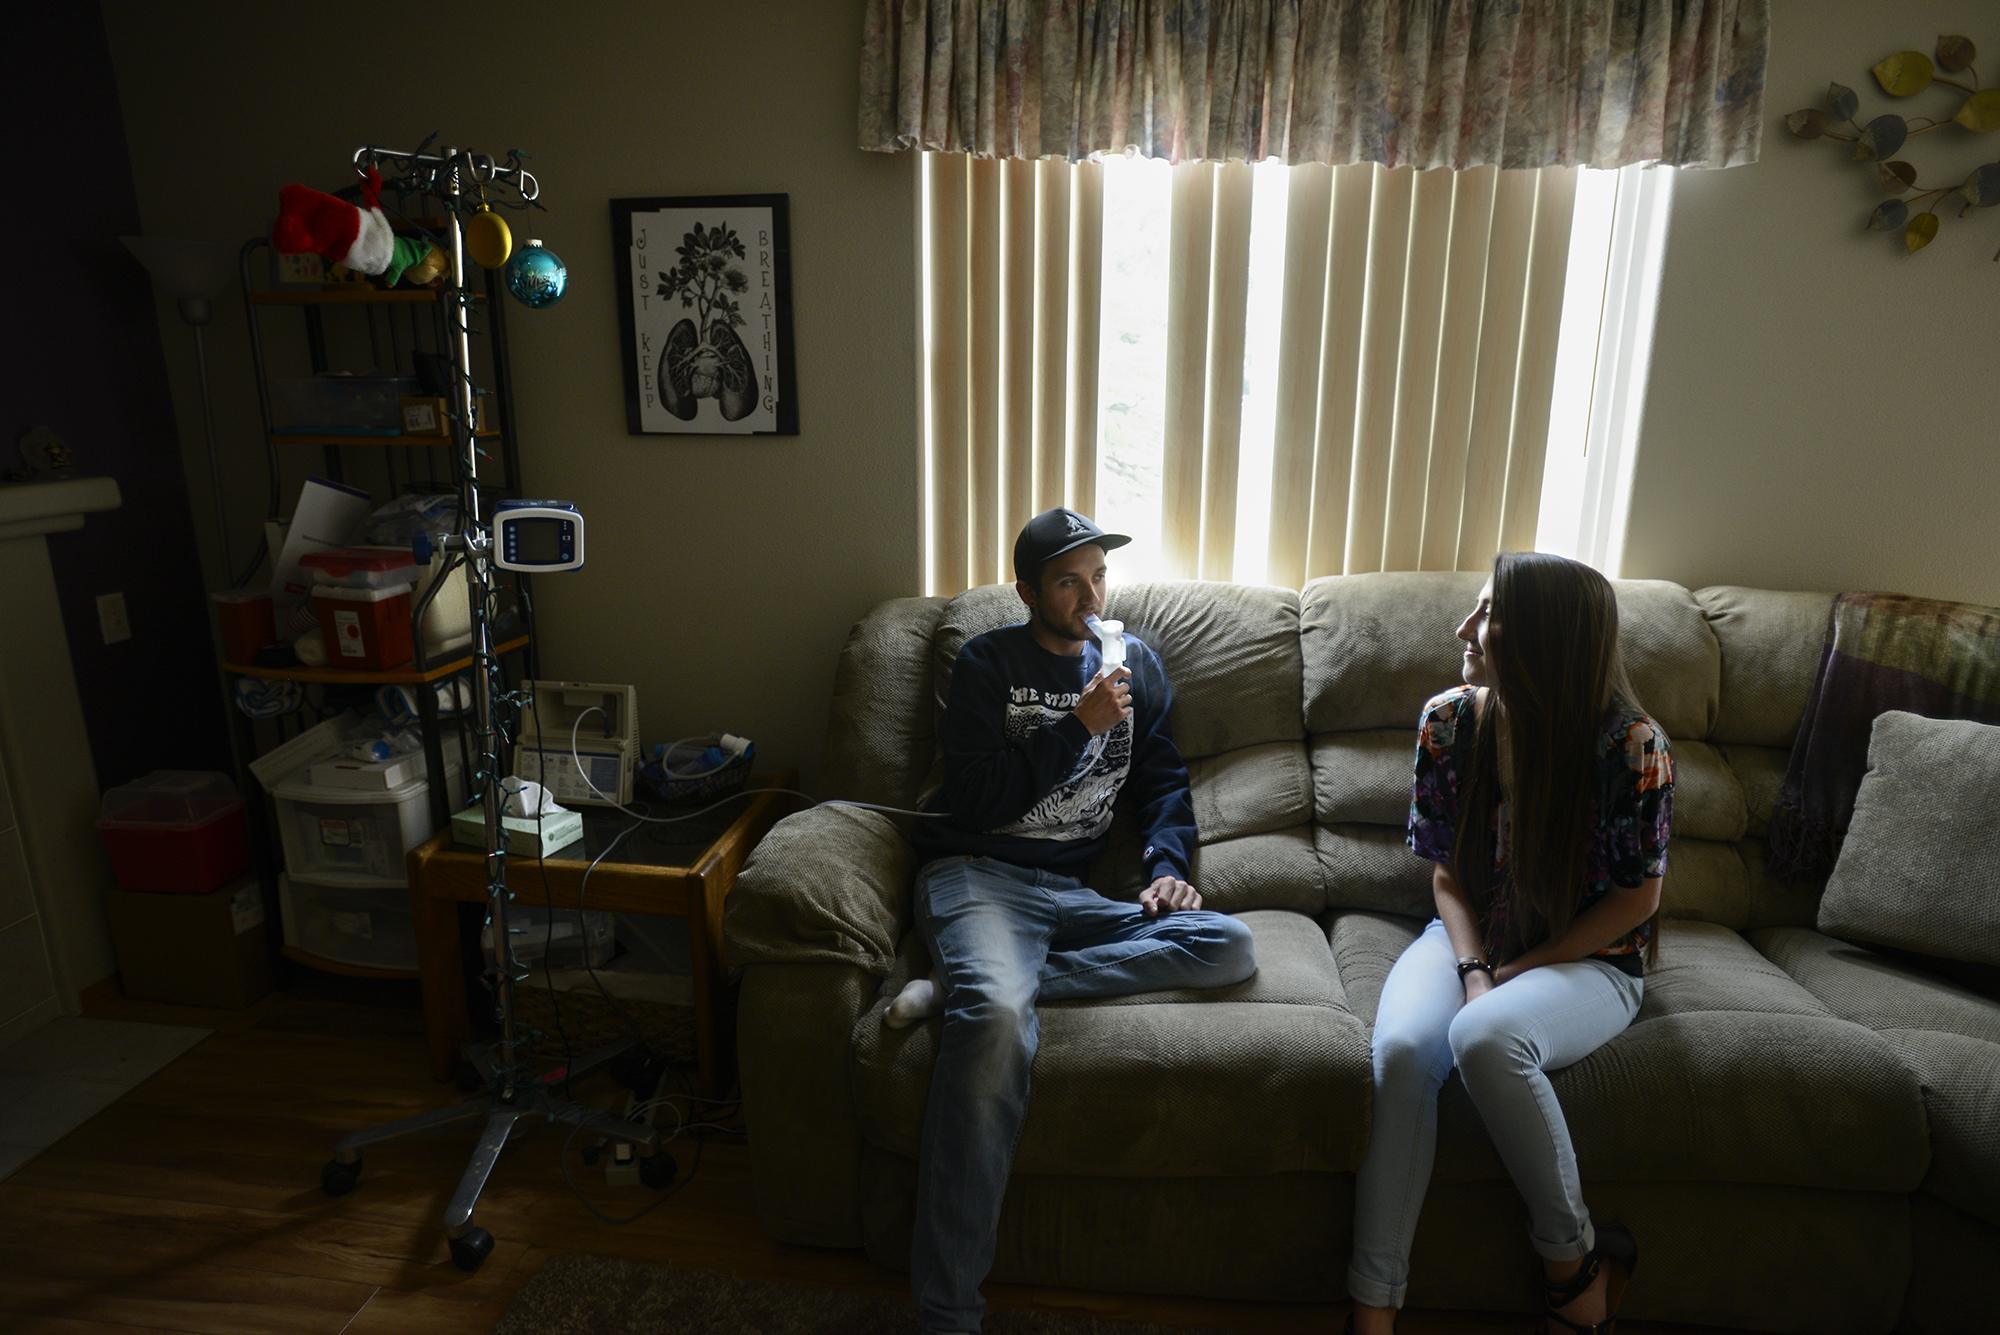 Matthew Pozsgai, left, breathes in hypertonic saline to help with his cystic fibrosis, while his sister, McKenna Pozsgai, talks to him at their Vancouver home, Tuesday July 5, 2016. After Matthew, 21, was diagnosed with cystic fibrosis, McKenna, 16, was selected by the Oregon chapter of the CF Foundation to be the voice for the 650 people in Oregon with the disease. She recently spoke with lawmakers in Washington DC about improving research and funding for cystic fibrosis. (Ariane Kunze/The Columbian)